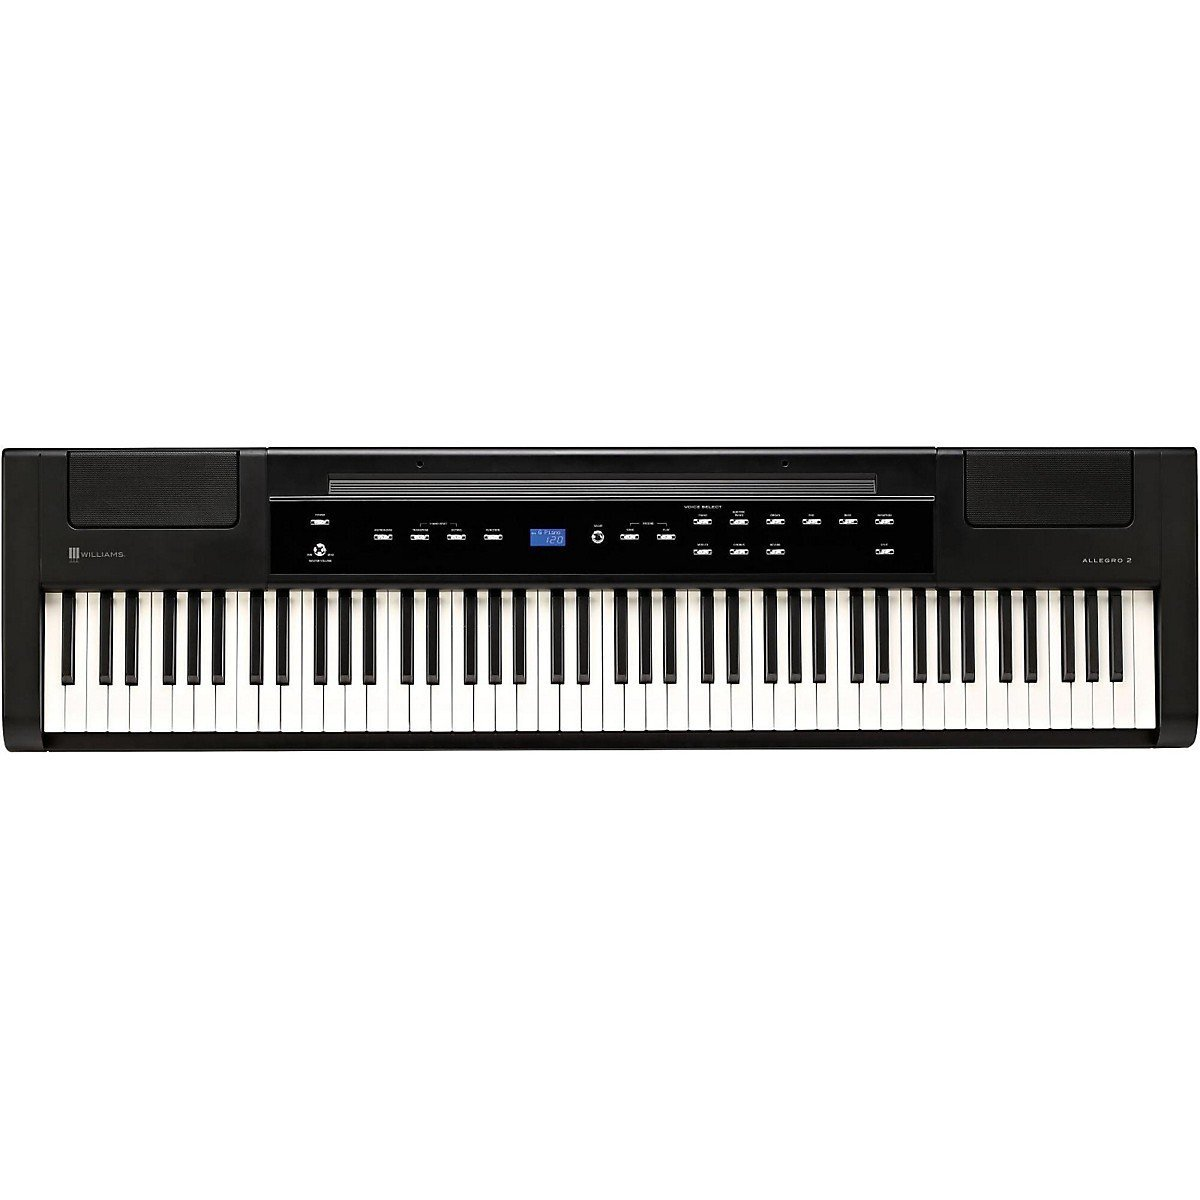 How To Spot The Best Digital Piano: Yamaha DGX 660 Review.